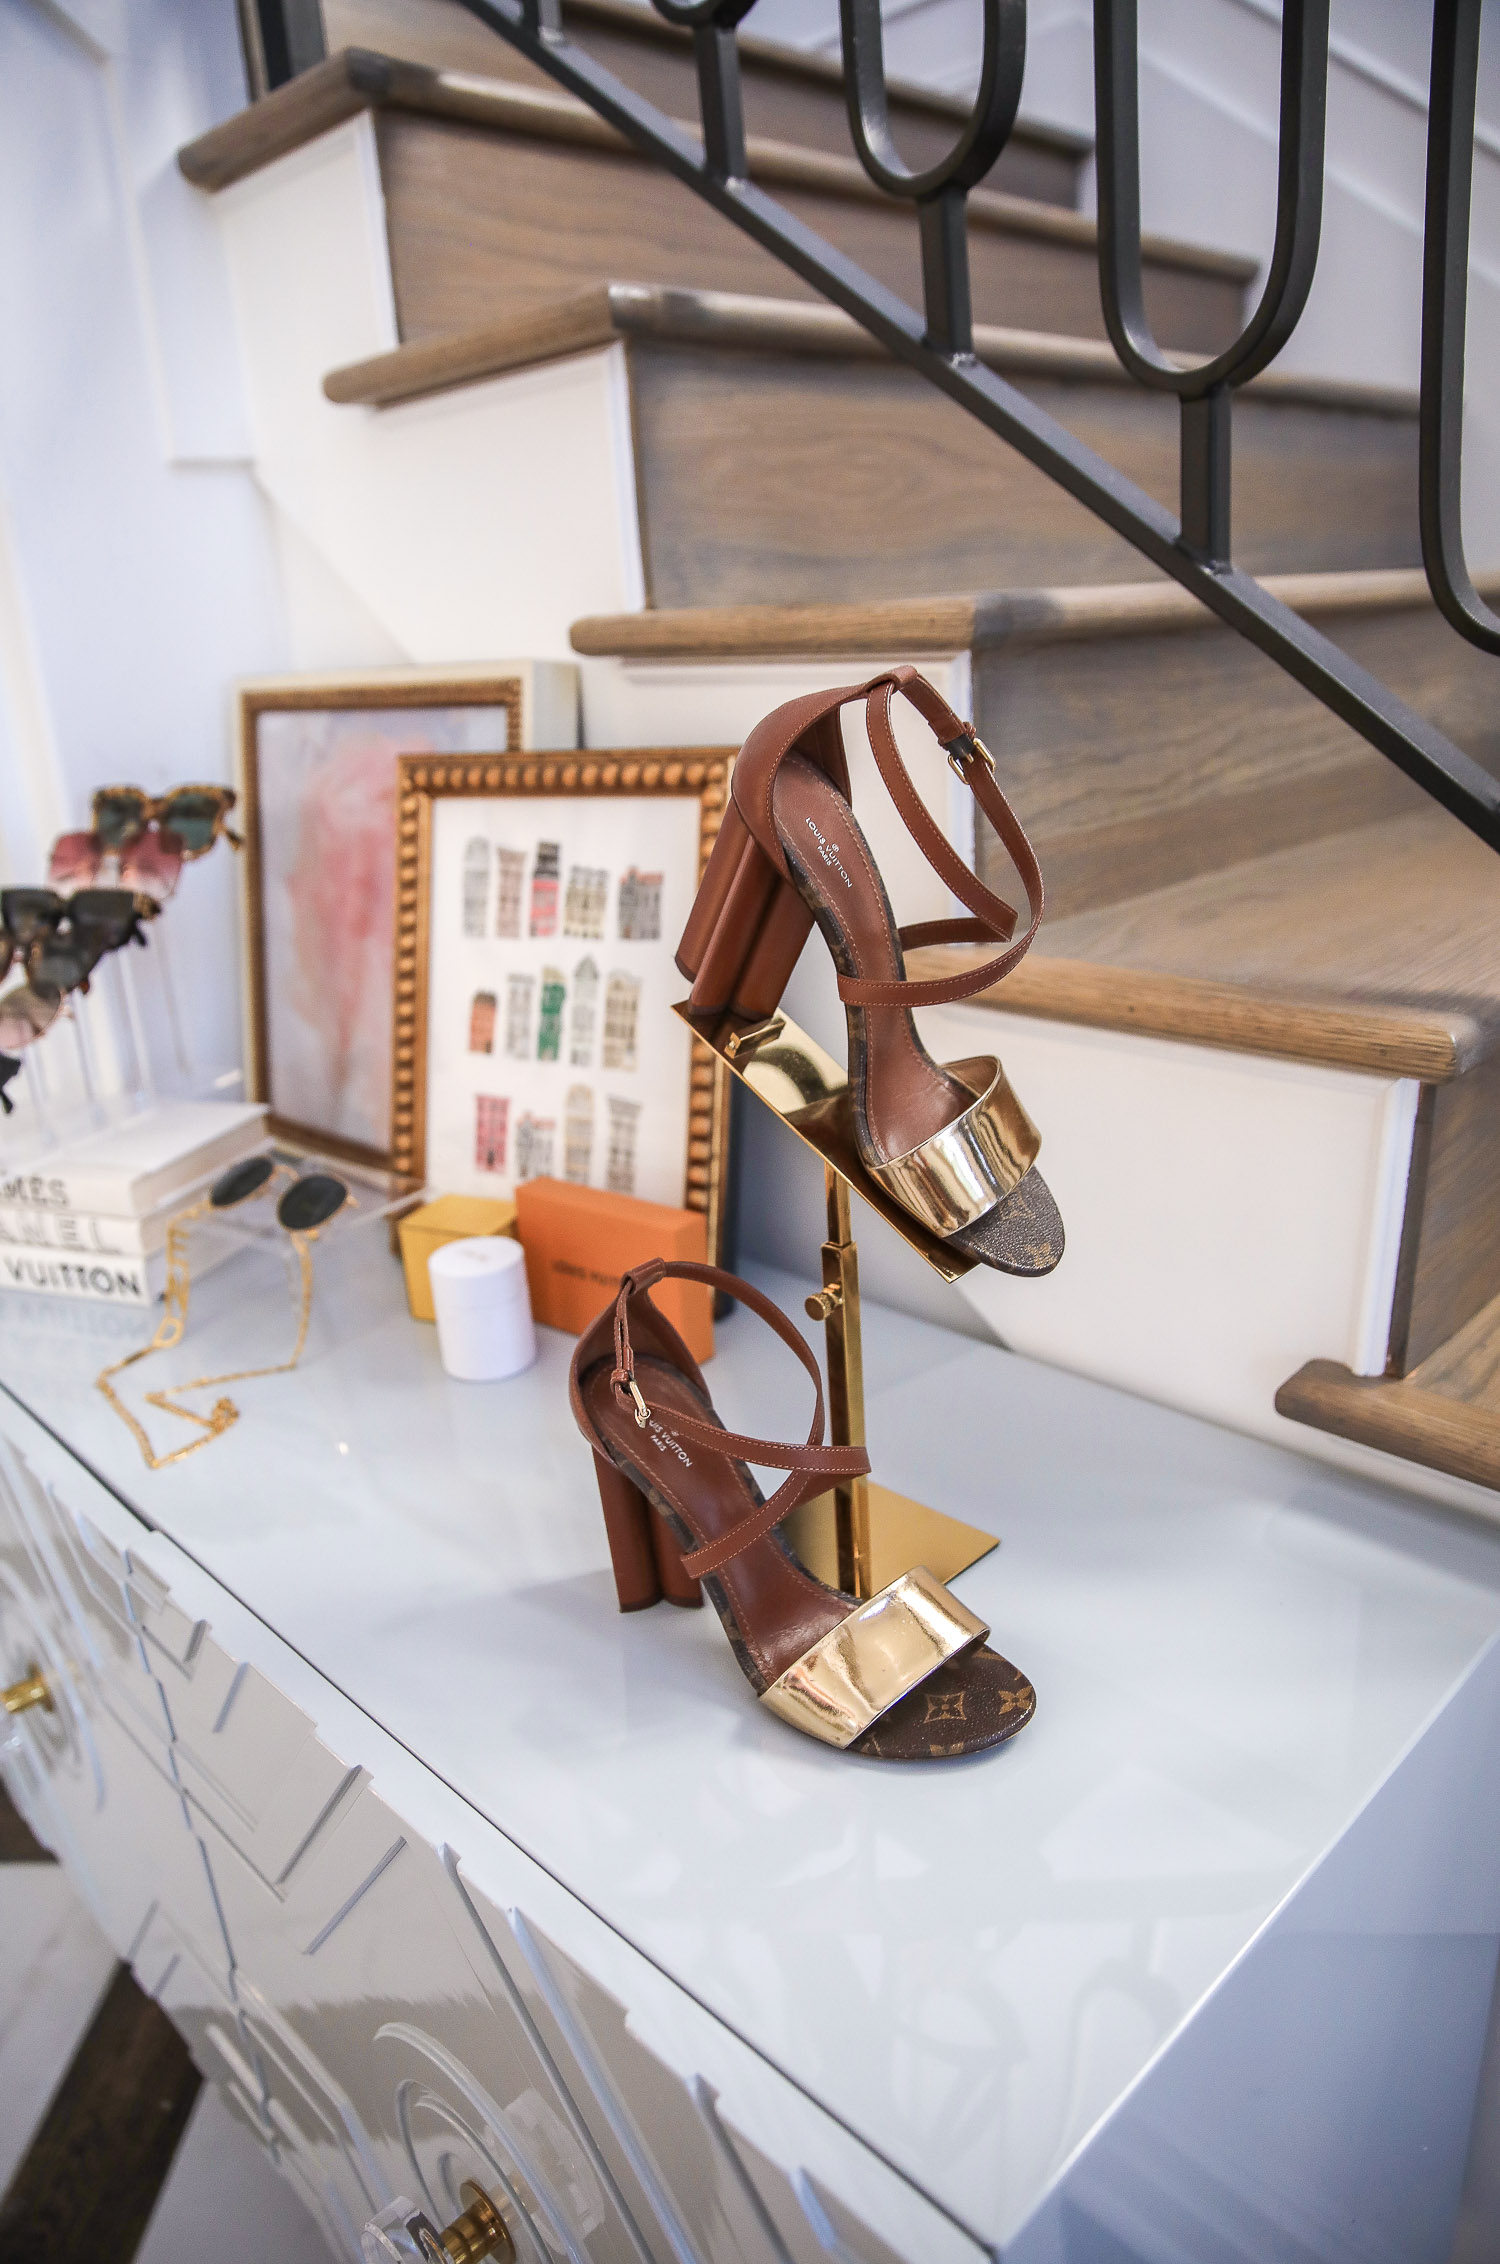 amazon must haves summer 2020, amazon home decor blog post, amazon luxury must haves, two story closet pinterest, emily gemma, closet organization | Amazon Favorites by popular US life and style blog, The Sweetest Thing: image of a shoe display stand.